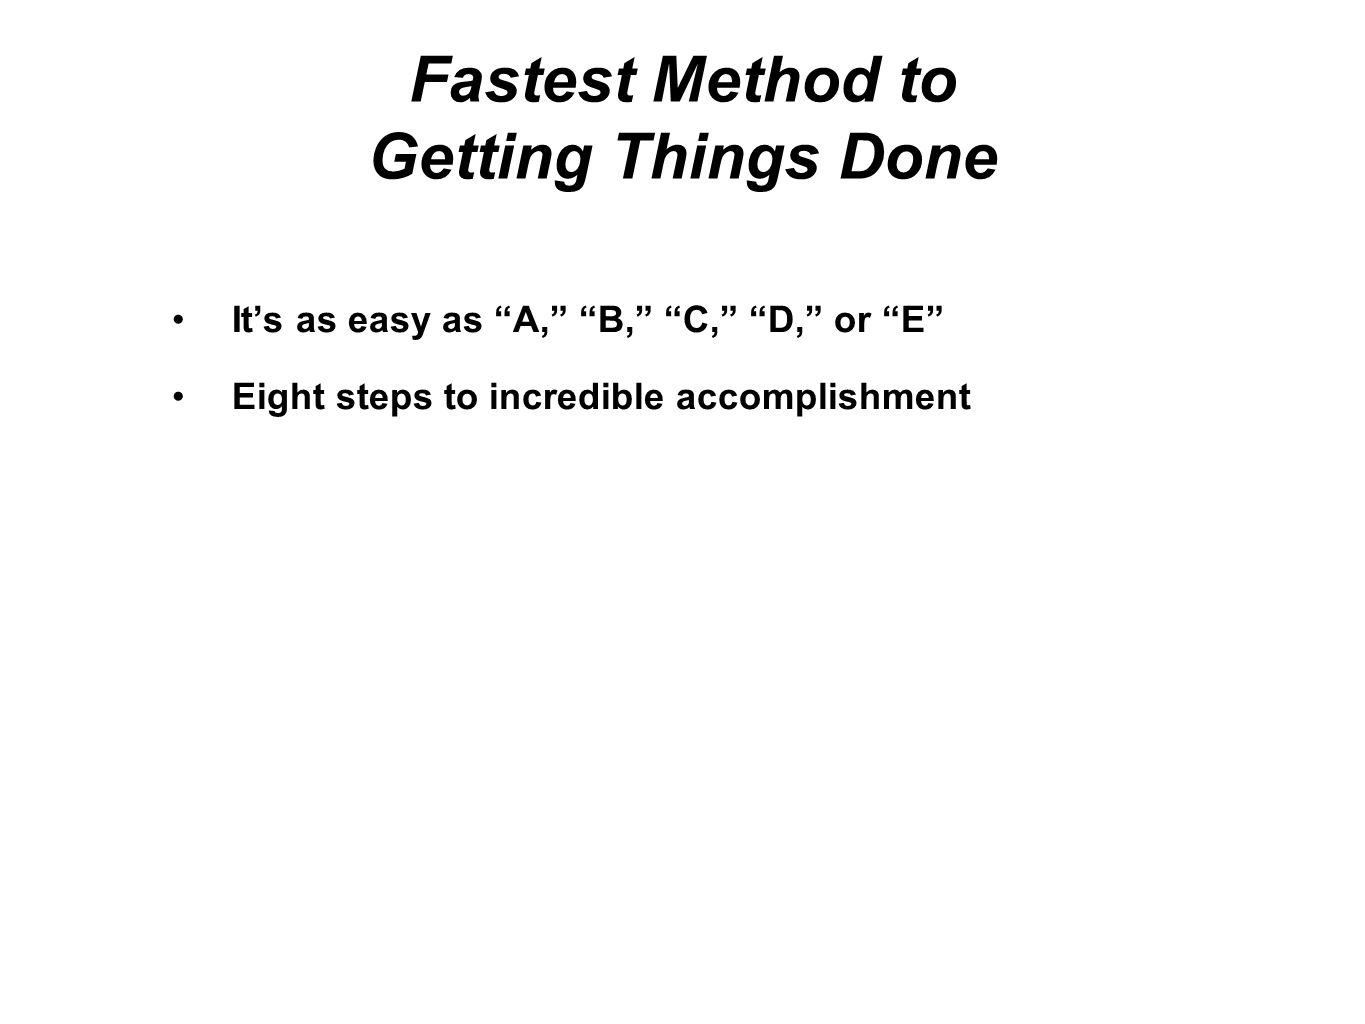 Fastest Method to Getting Things Done Step 1 - Make a list of all the things you have to do Step 2 - Put an A, B, C, D, or E, according to the following: A - a task you have to do, there will be serious consequences if you do not do it B - a task it would be great to do, there will be some consequences if you do not do it C - a task that would not make a difference if it was not done, a waste of your precious time D - a task you should delegate, do not do this task if someone else can E - a task you should eliminate, do not do these tasks